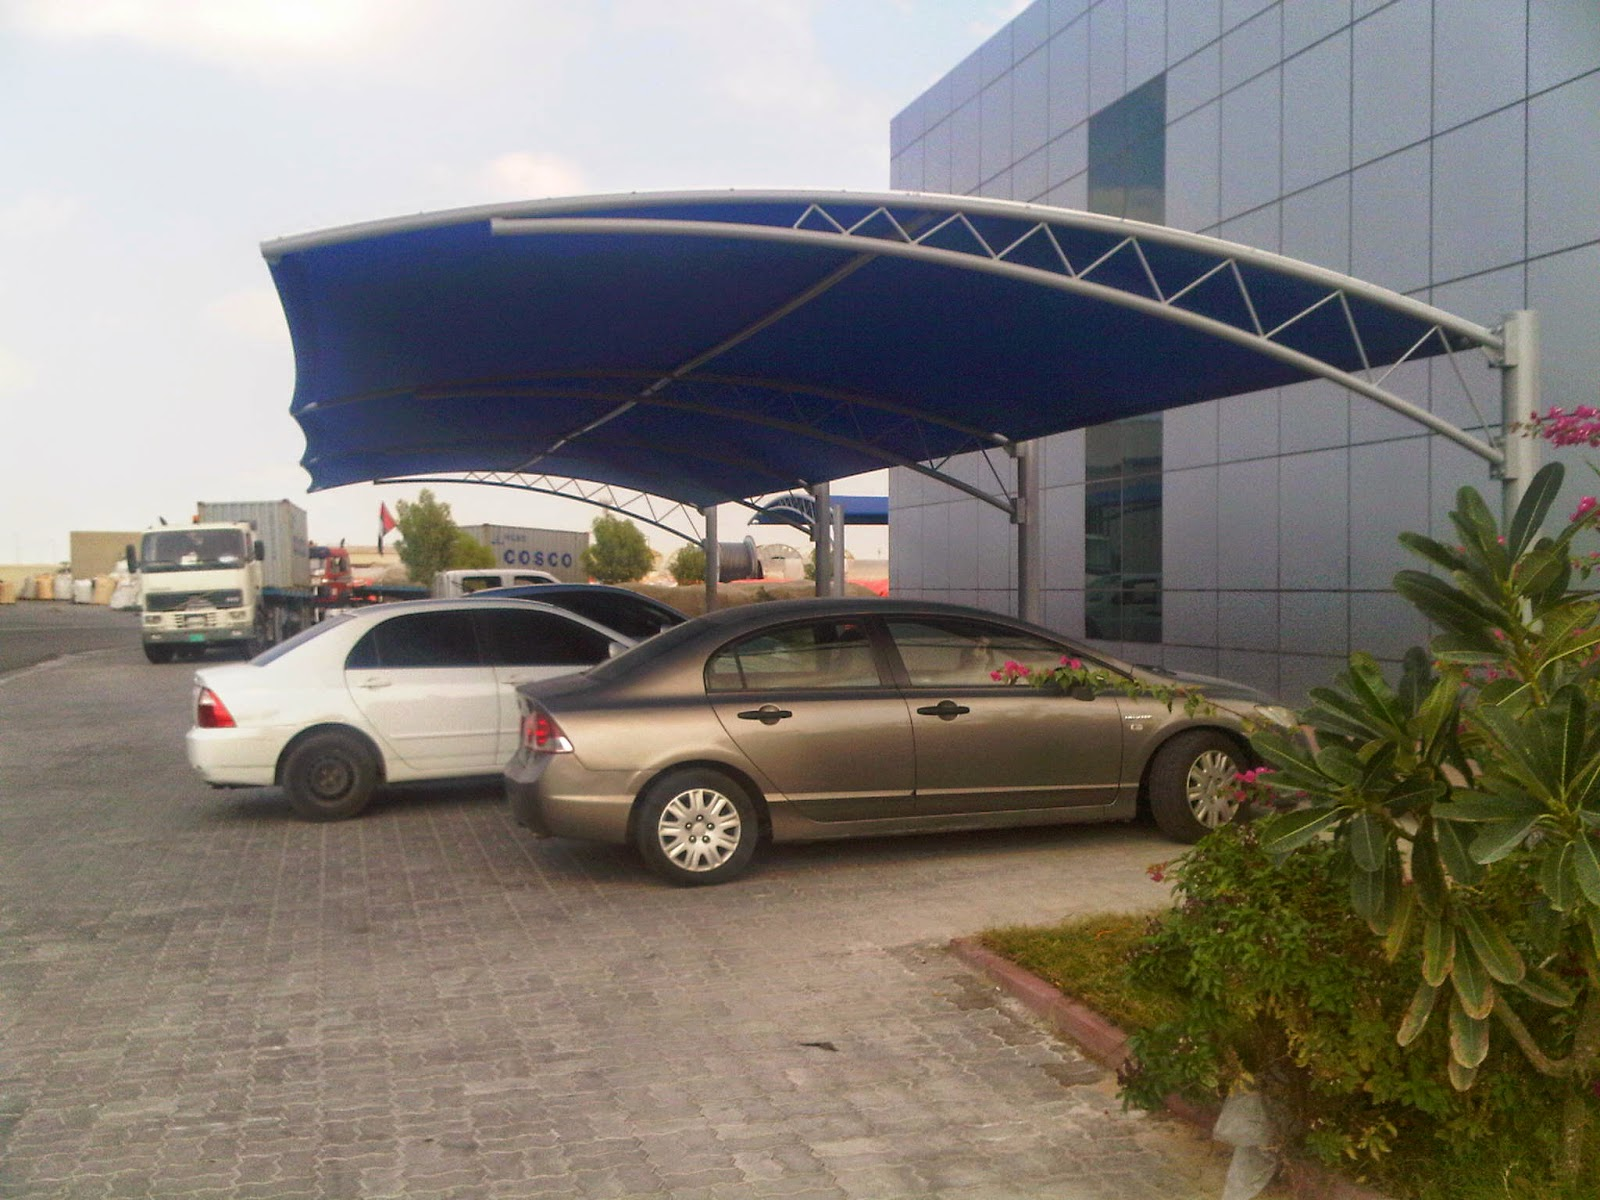 ... C&ing Tents Hajj Tents Frame Tents Marquee Tents General Tents car parking shades sail shades Swimming pool shade and Tensile Shade. & Tensile Shade IN UAE | Car Parking Shade UAE | Bait Al Nobala ...